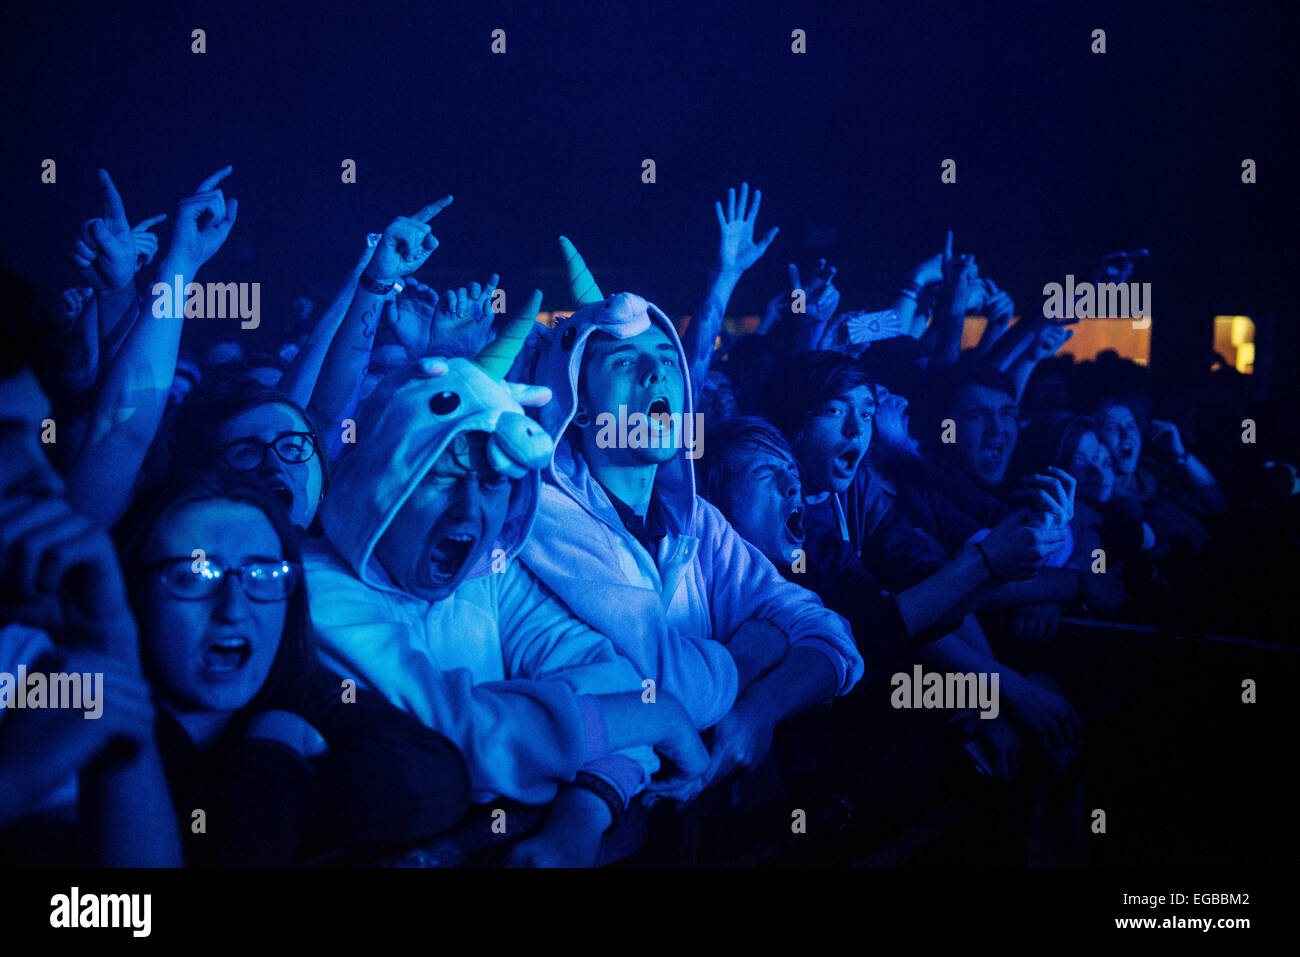 Rou Reynolds of Enter Shikari performs on stage at Barrowlands Ballroom on February 22, 2015. Credit:  Sam Kovak/Alamy - Stock Image